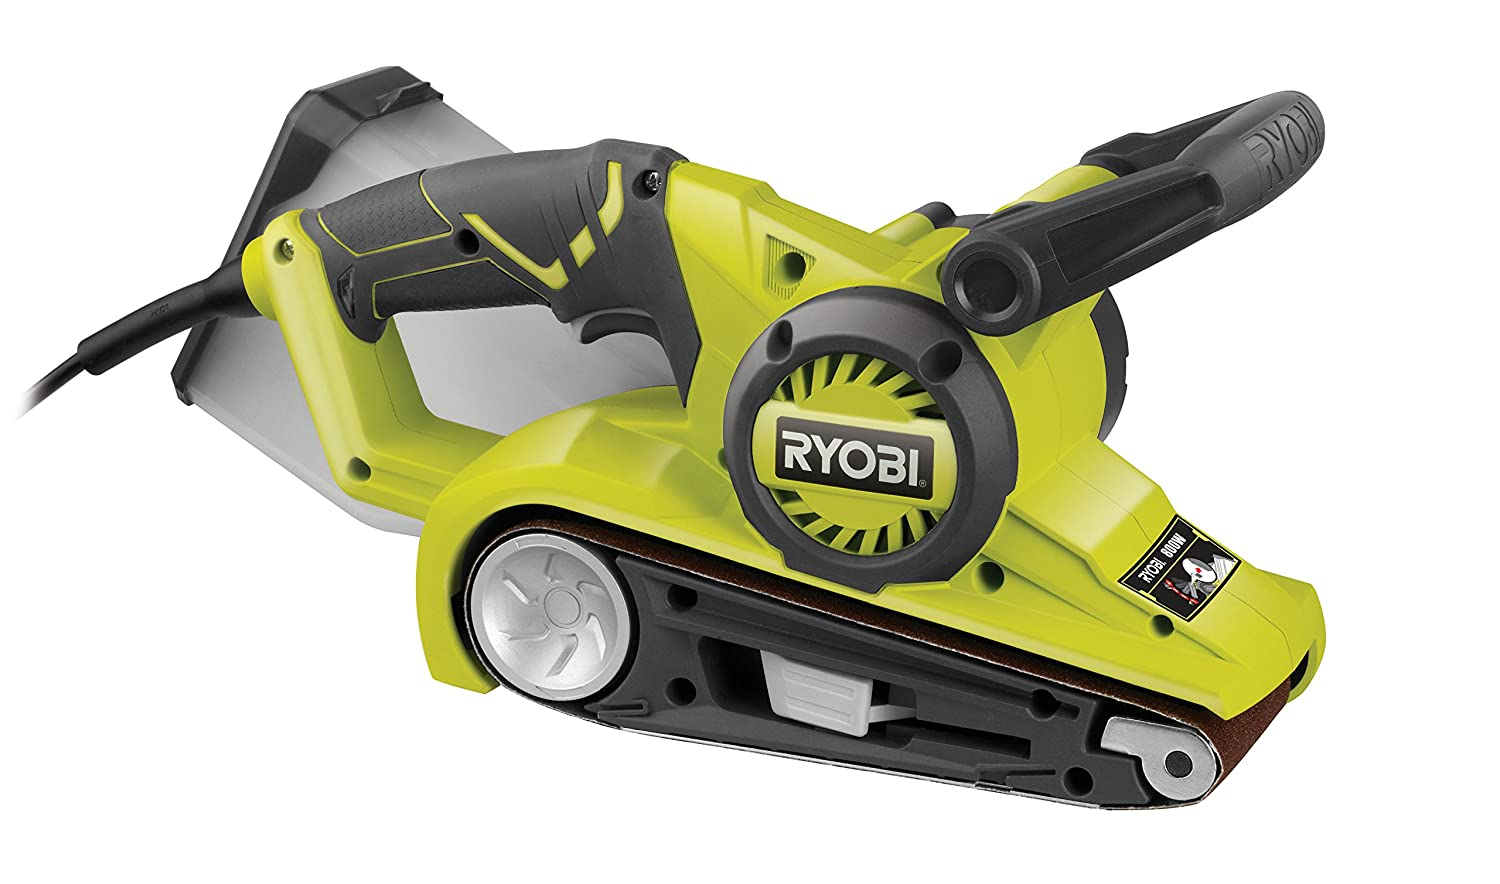 Ryobi EBS800VVariable Speed Belt Sander, 800 W